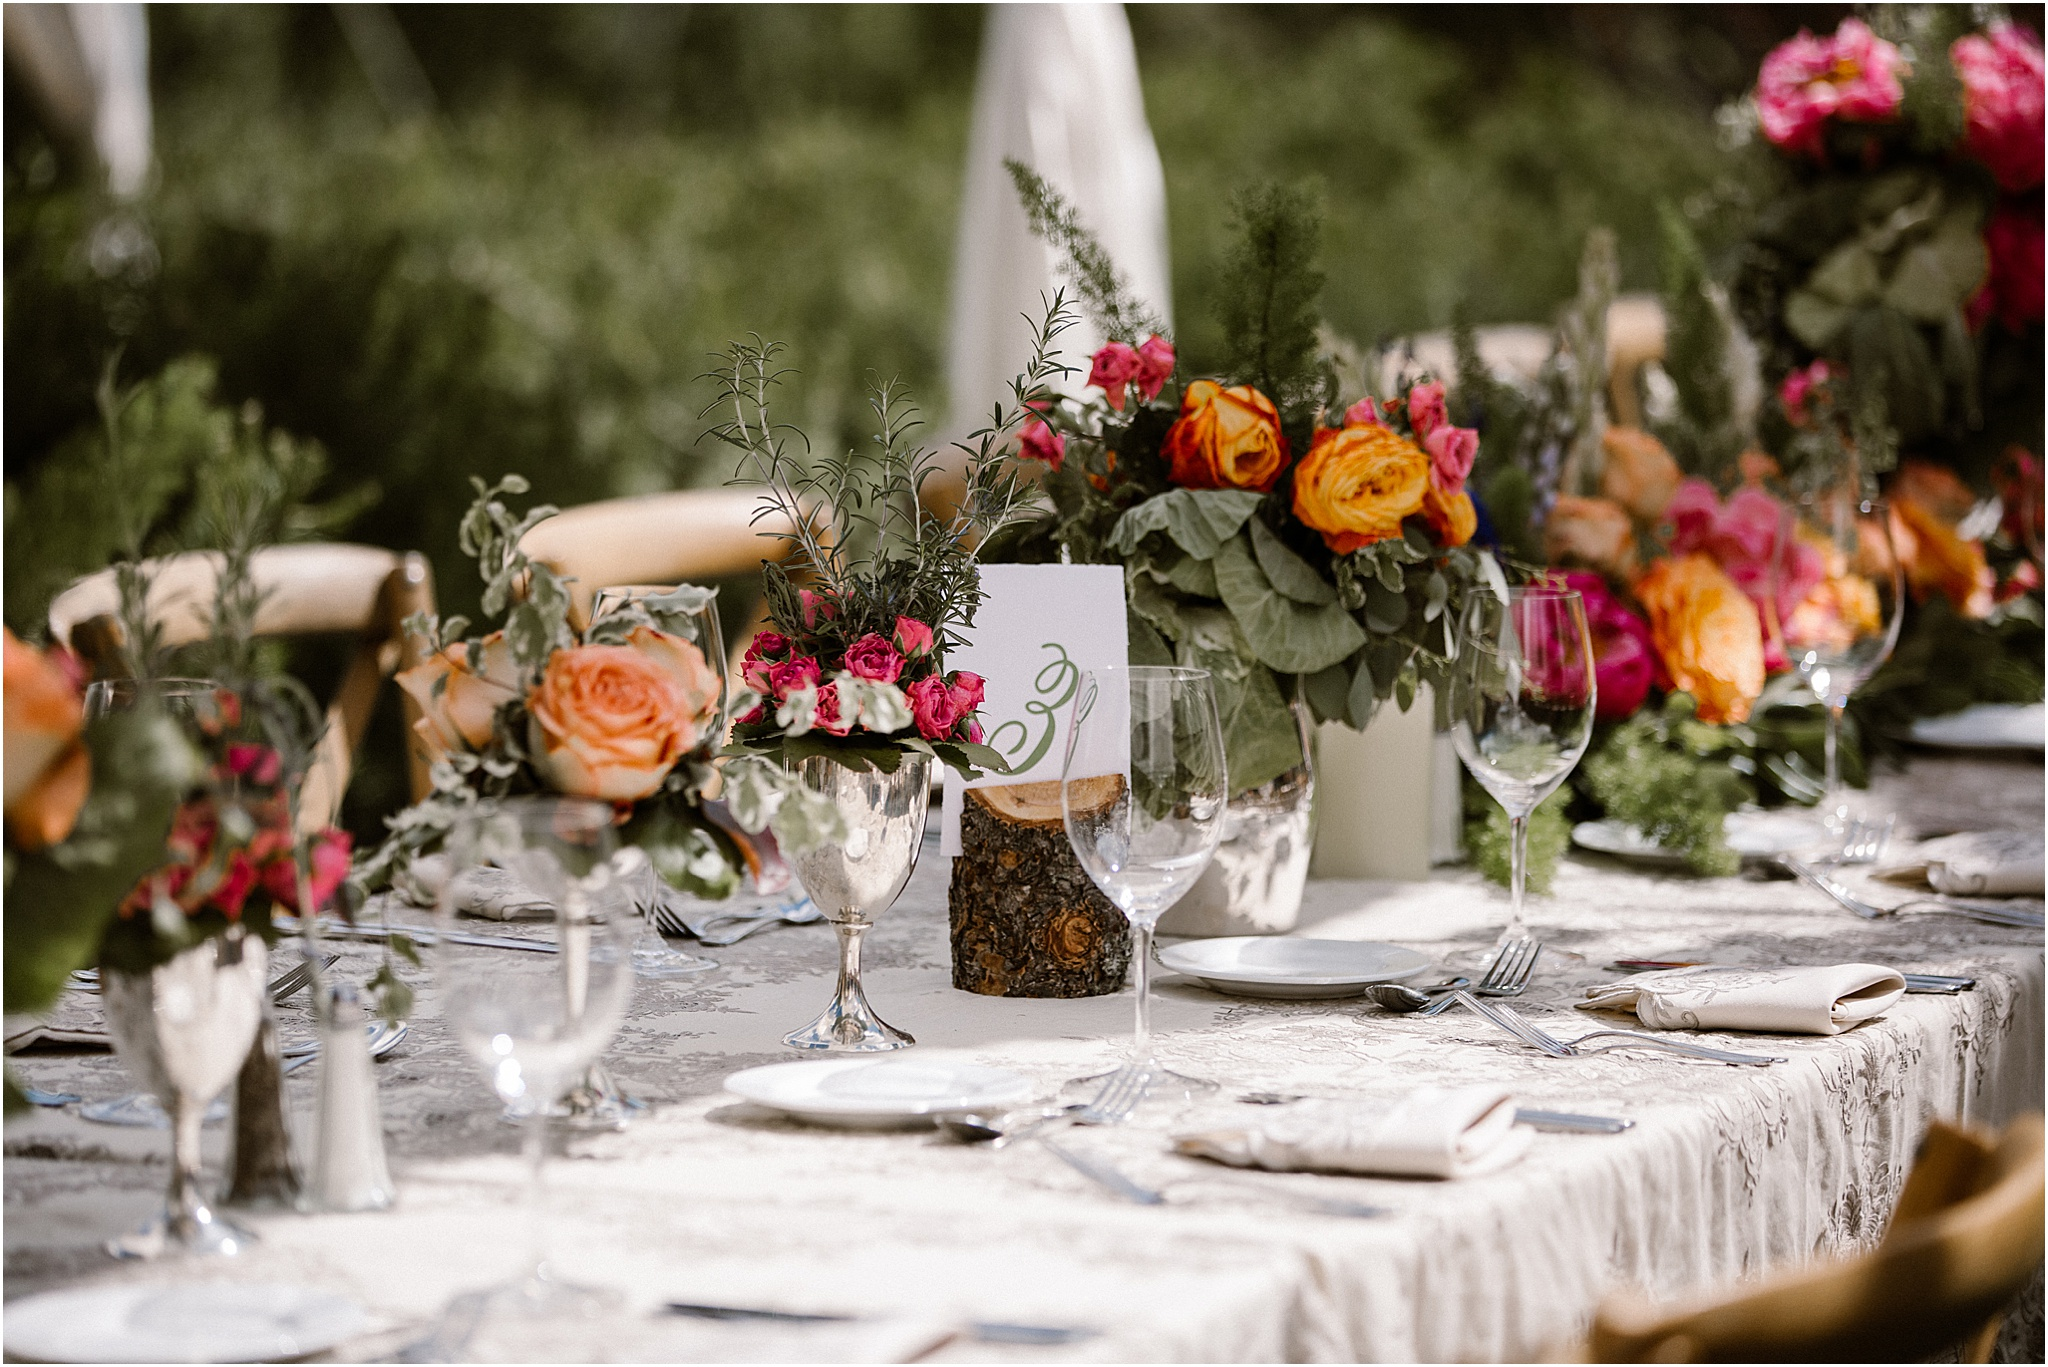 AMELIA_JASON_SANTA FE_ WEDDING_BLUE ROSE PHOTOGRAPHY54